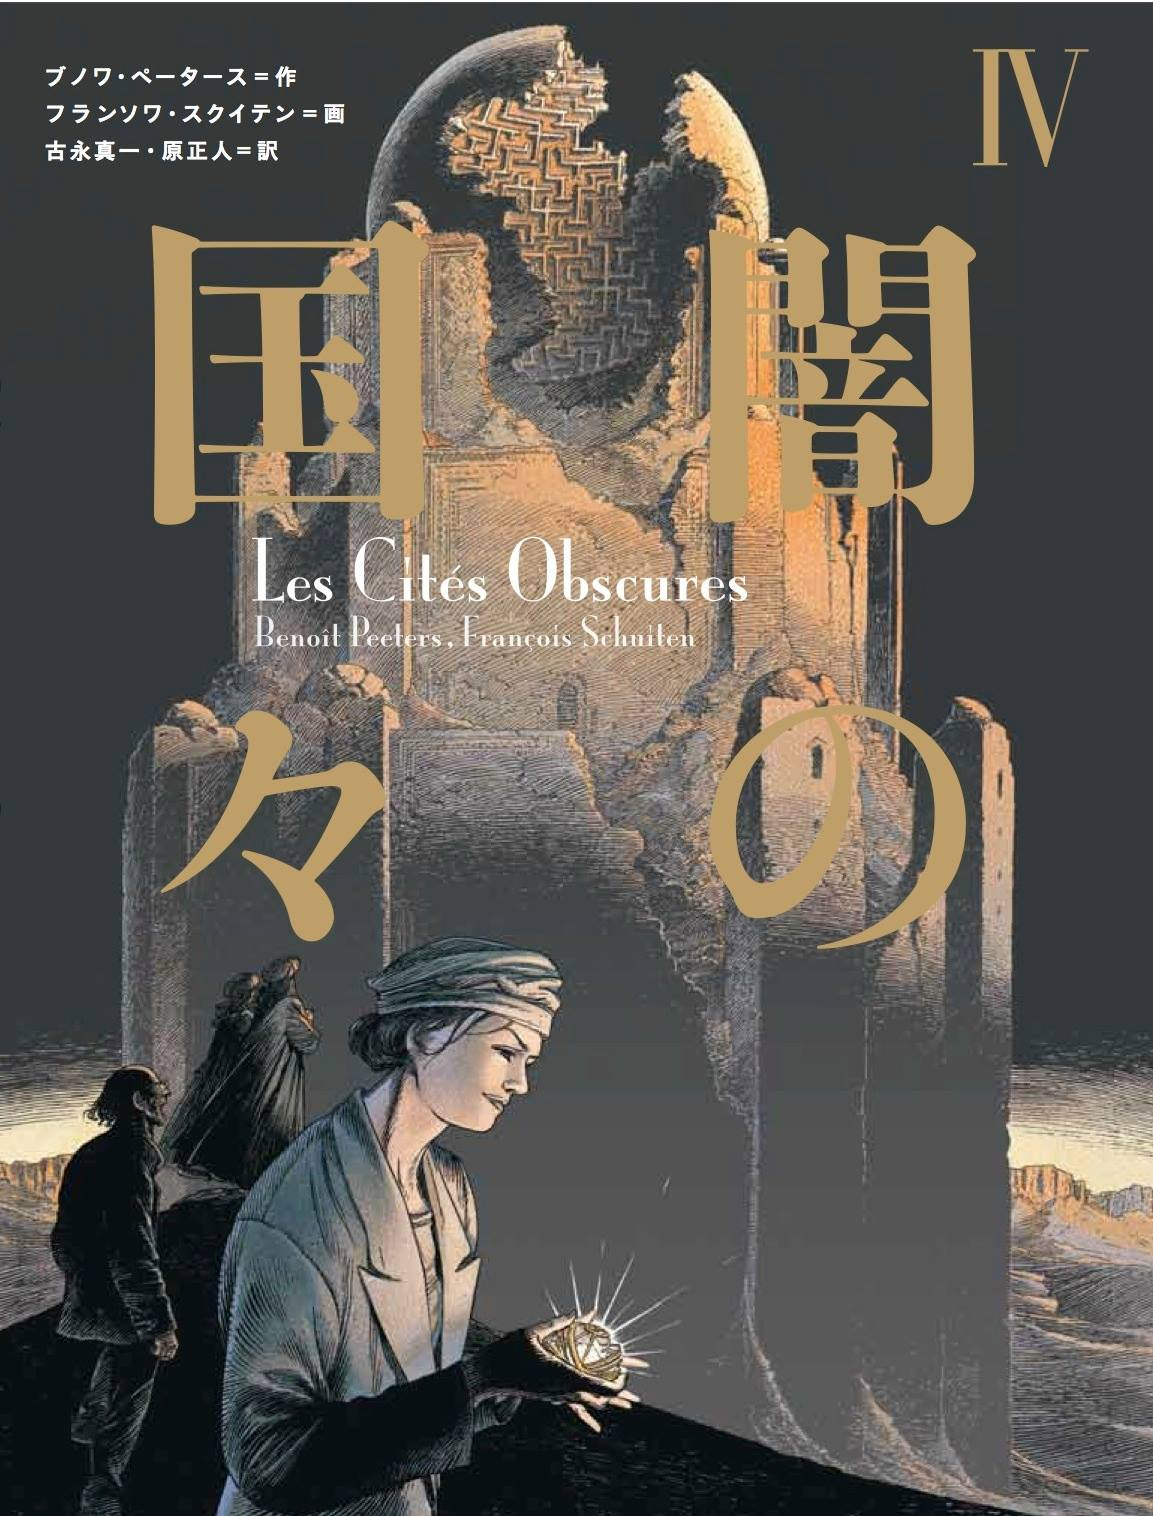 Cover of the 4th volume